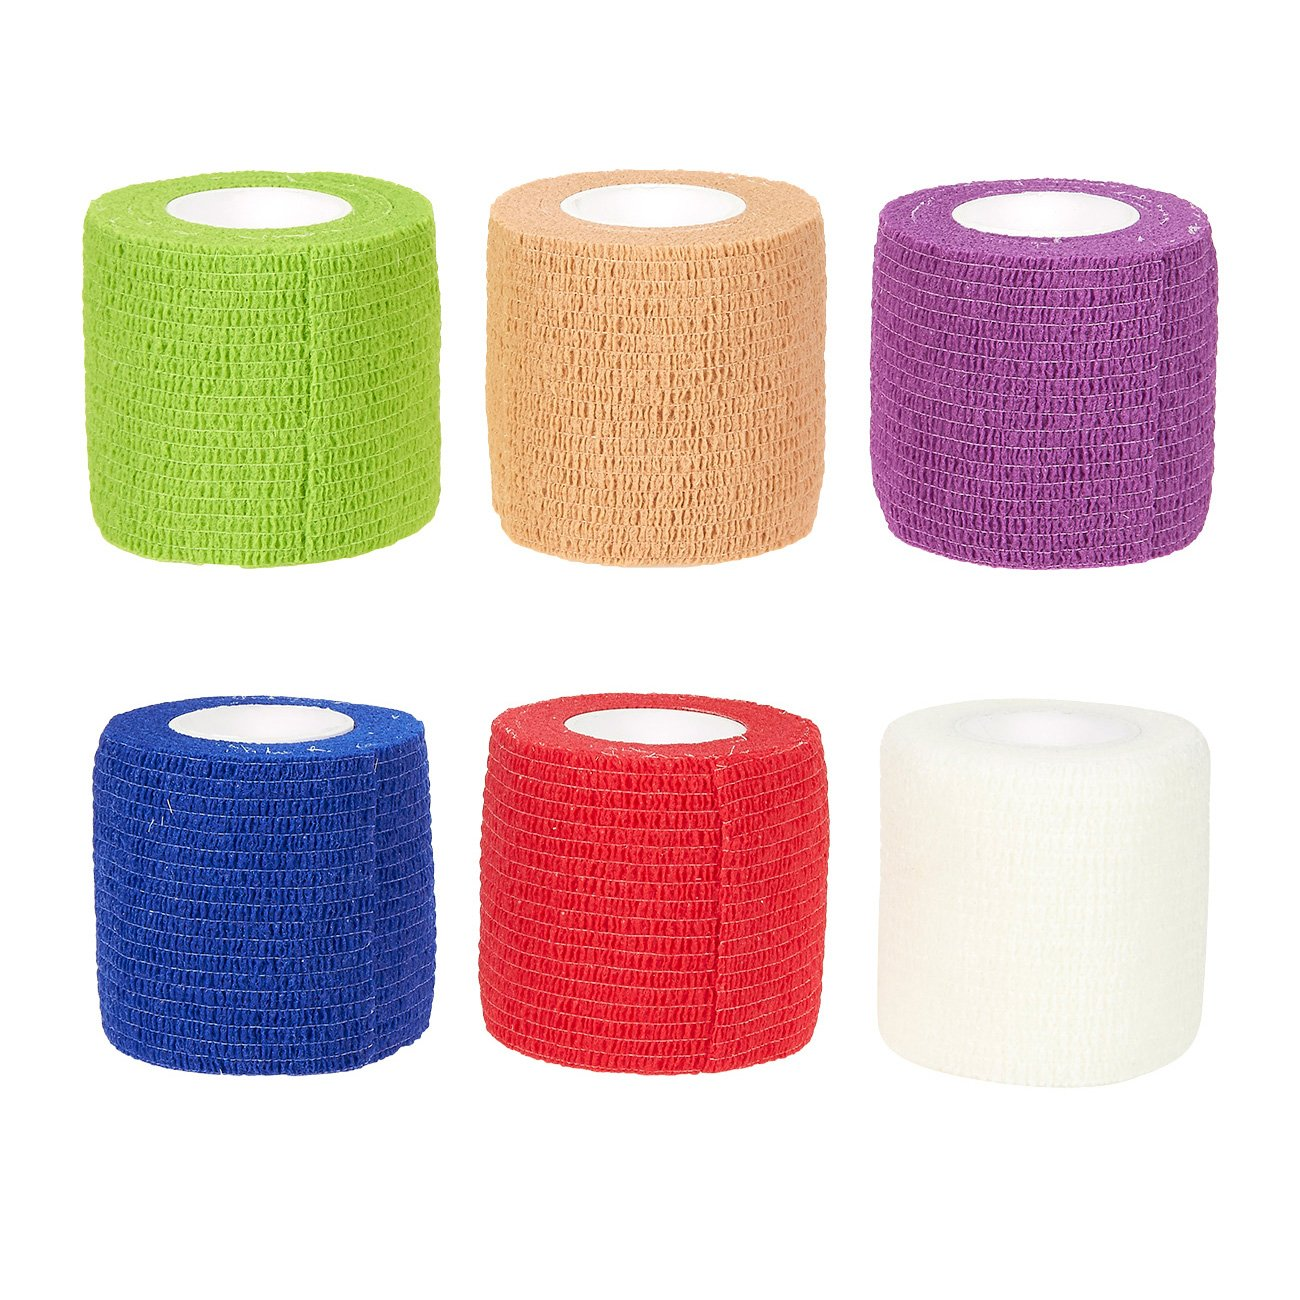 Juvale Pack of 12 Vet Wraps - Gauze Rolls - Cohesive Bandage - Bandage Wrap for Animals, Assorted Colors, 2 Inches x 66.9 Inches by Juvale (Image #4)